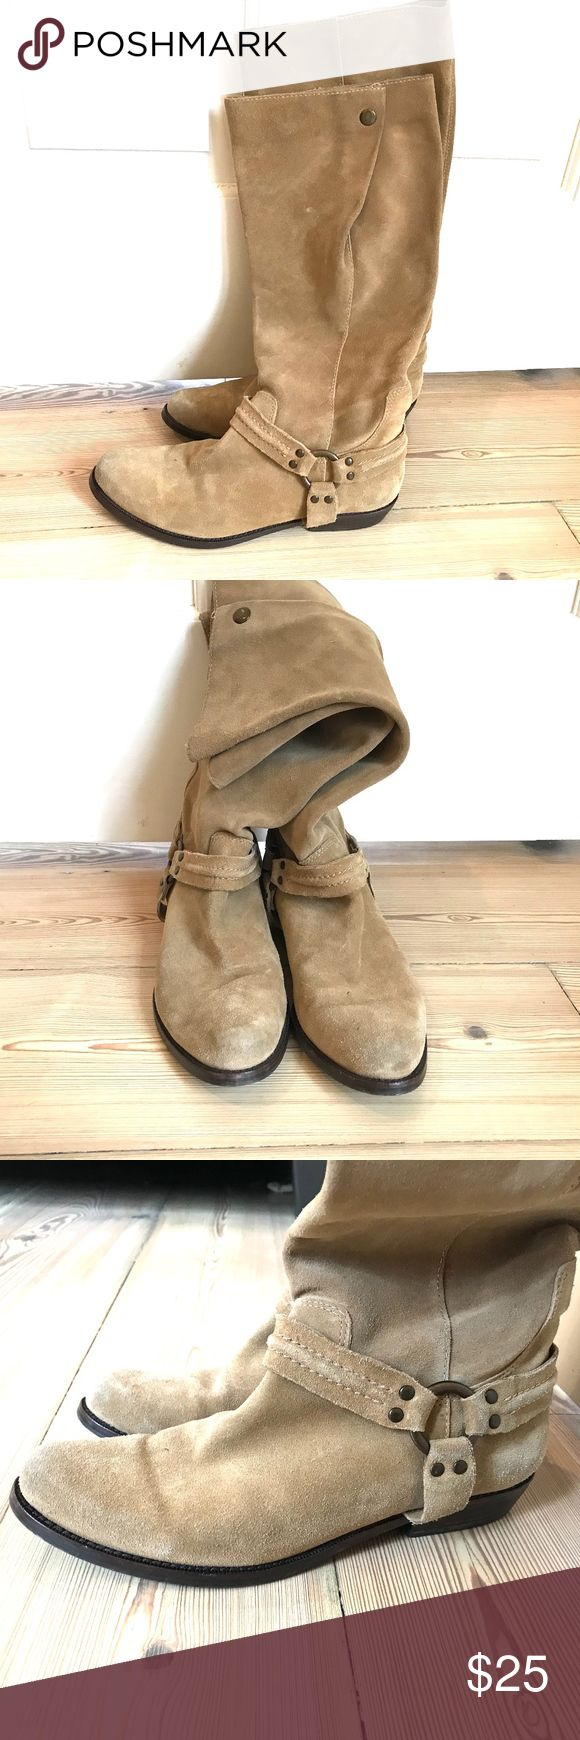 tan suede cowboy boots Franco Sarto Knee high tan suede cowboy boots.  Wide calf shaft with snap. Franco Sarto Shoes Ankle Boots & Booties